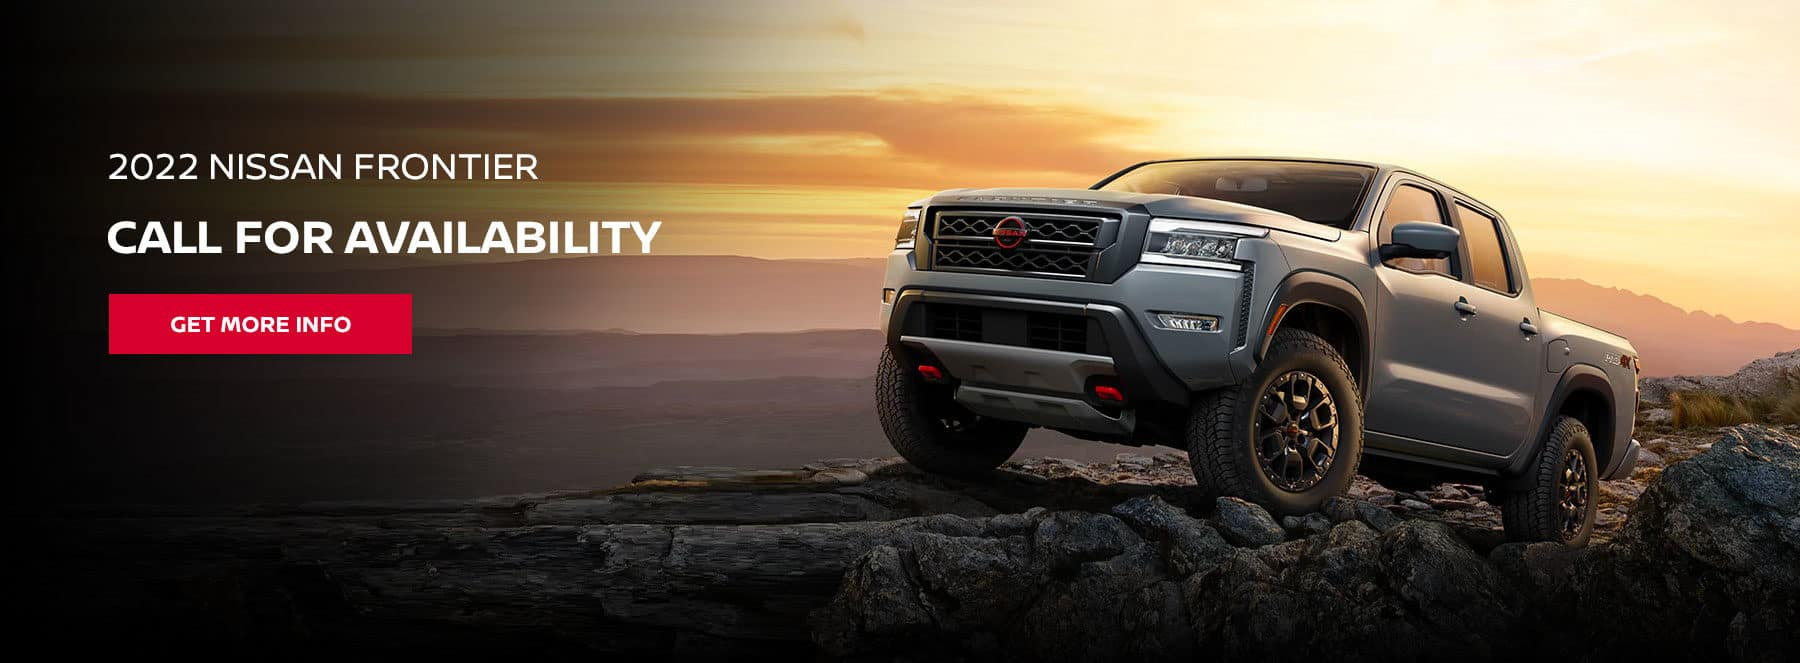 2022 Nissan Frontier, Call for Availability